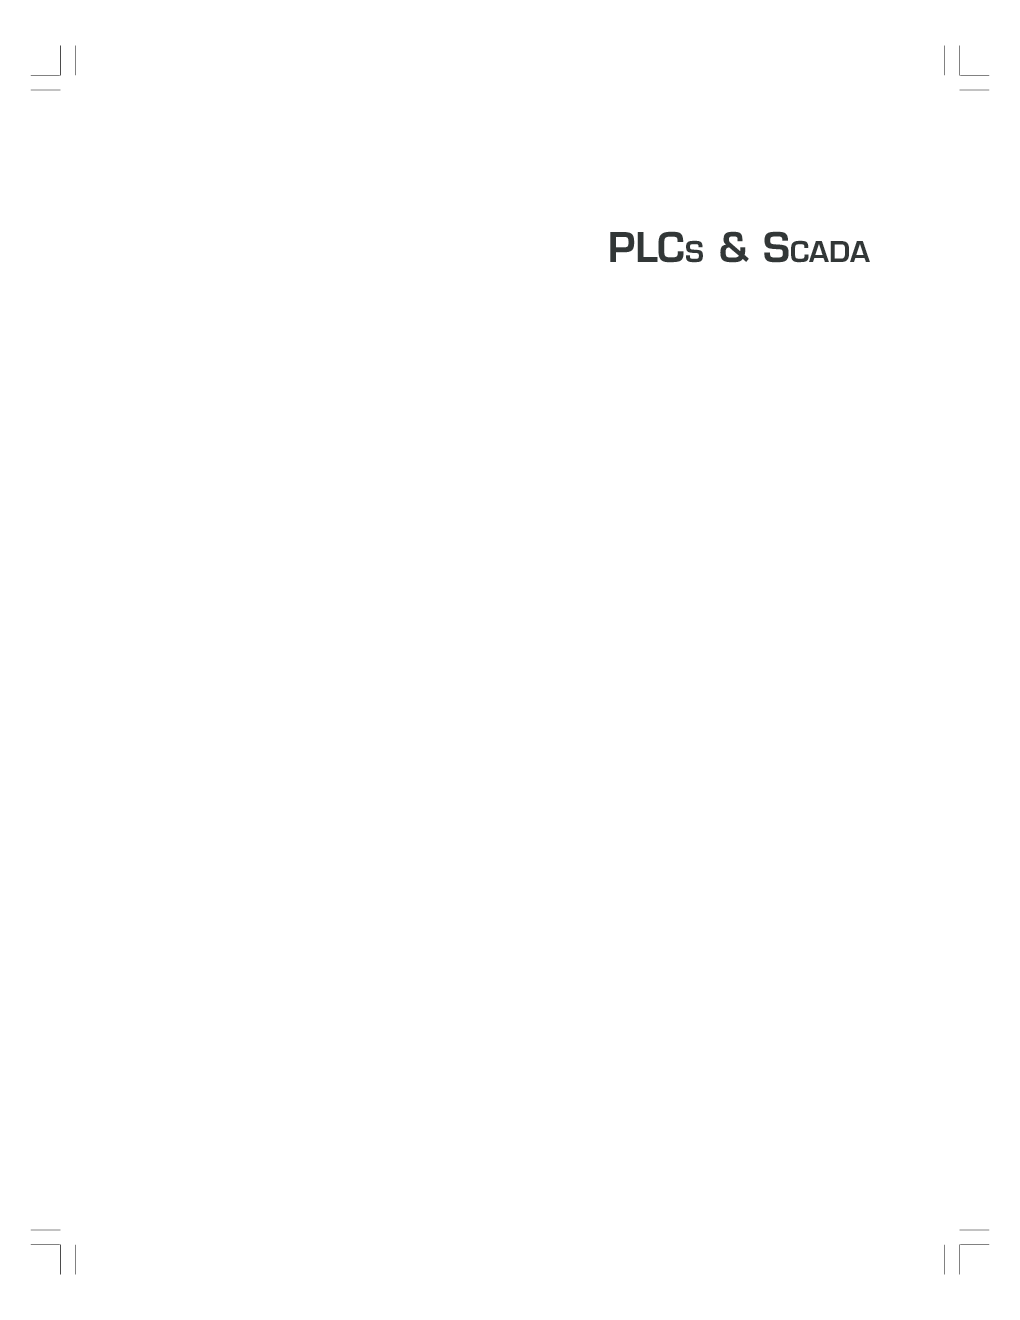 PLCS & SCADA Theory And Practice By Rajesh Mehra, Vikrant Vij - Page 1